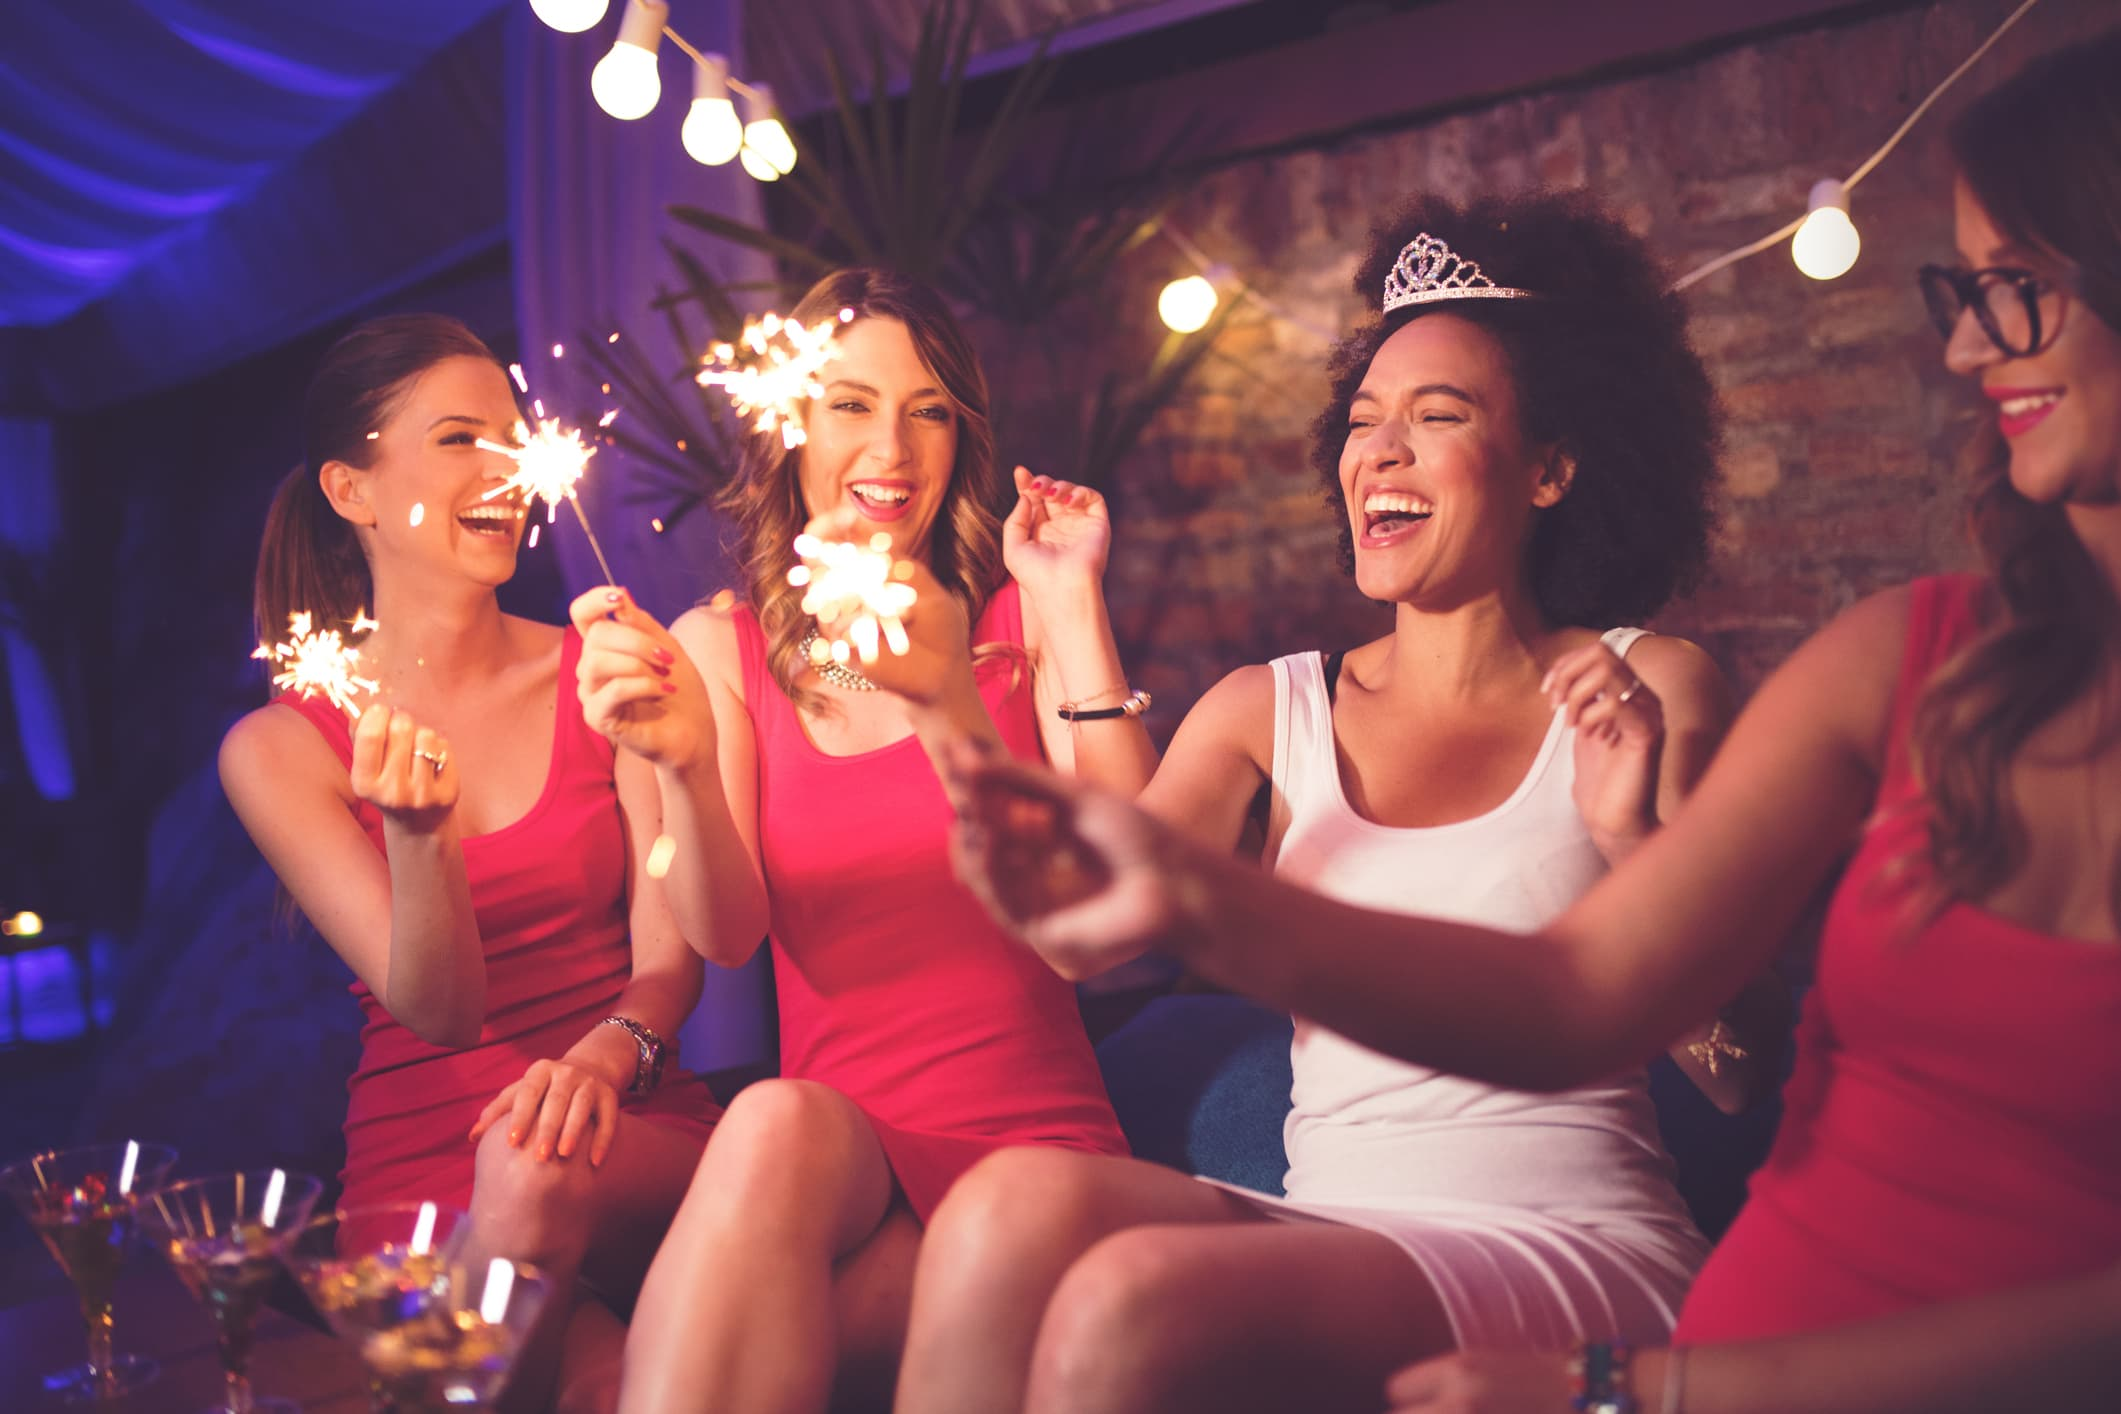 The average bachelorette costs $537 to attend—here's how much 5 women actually spent